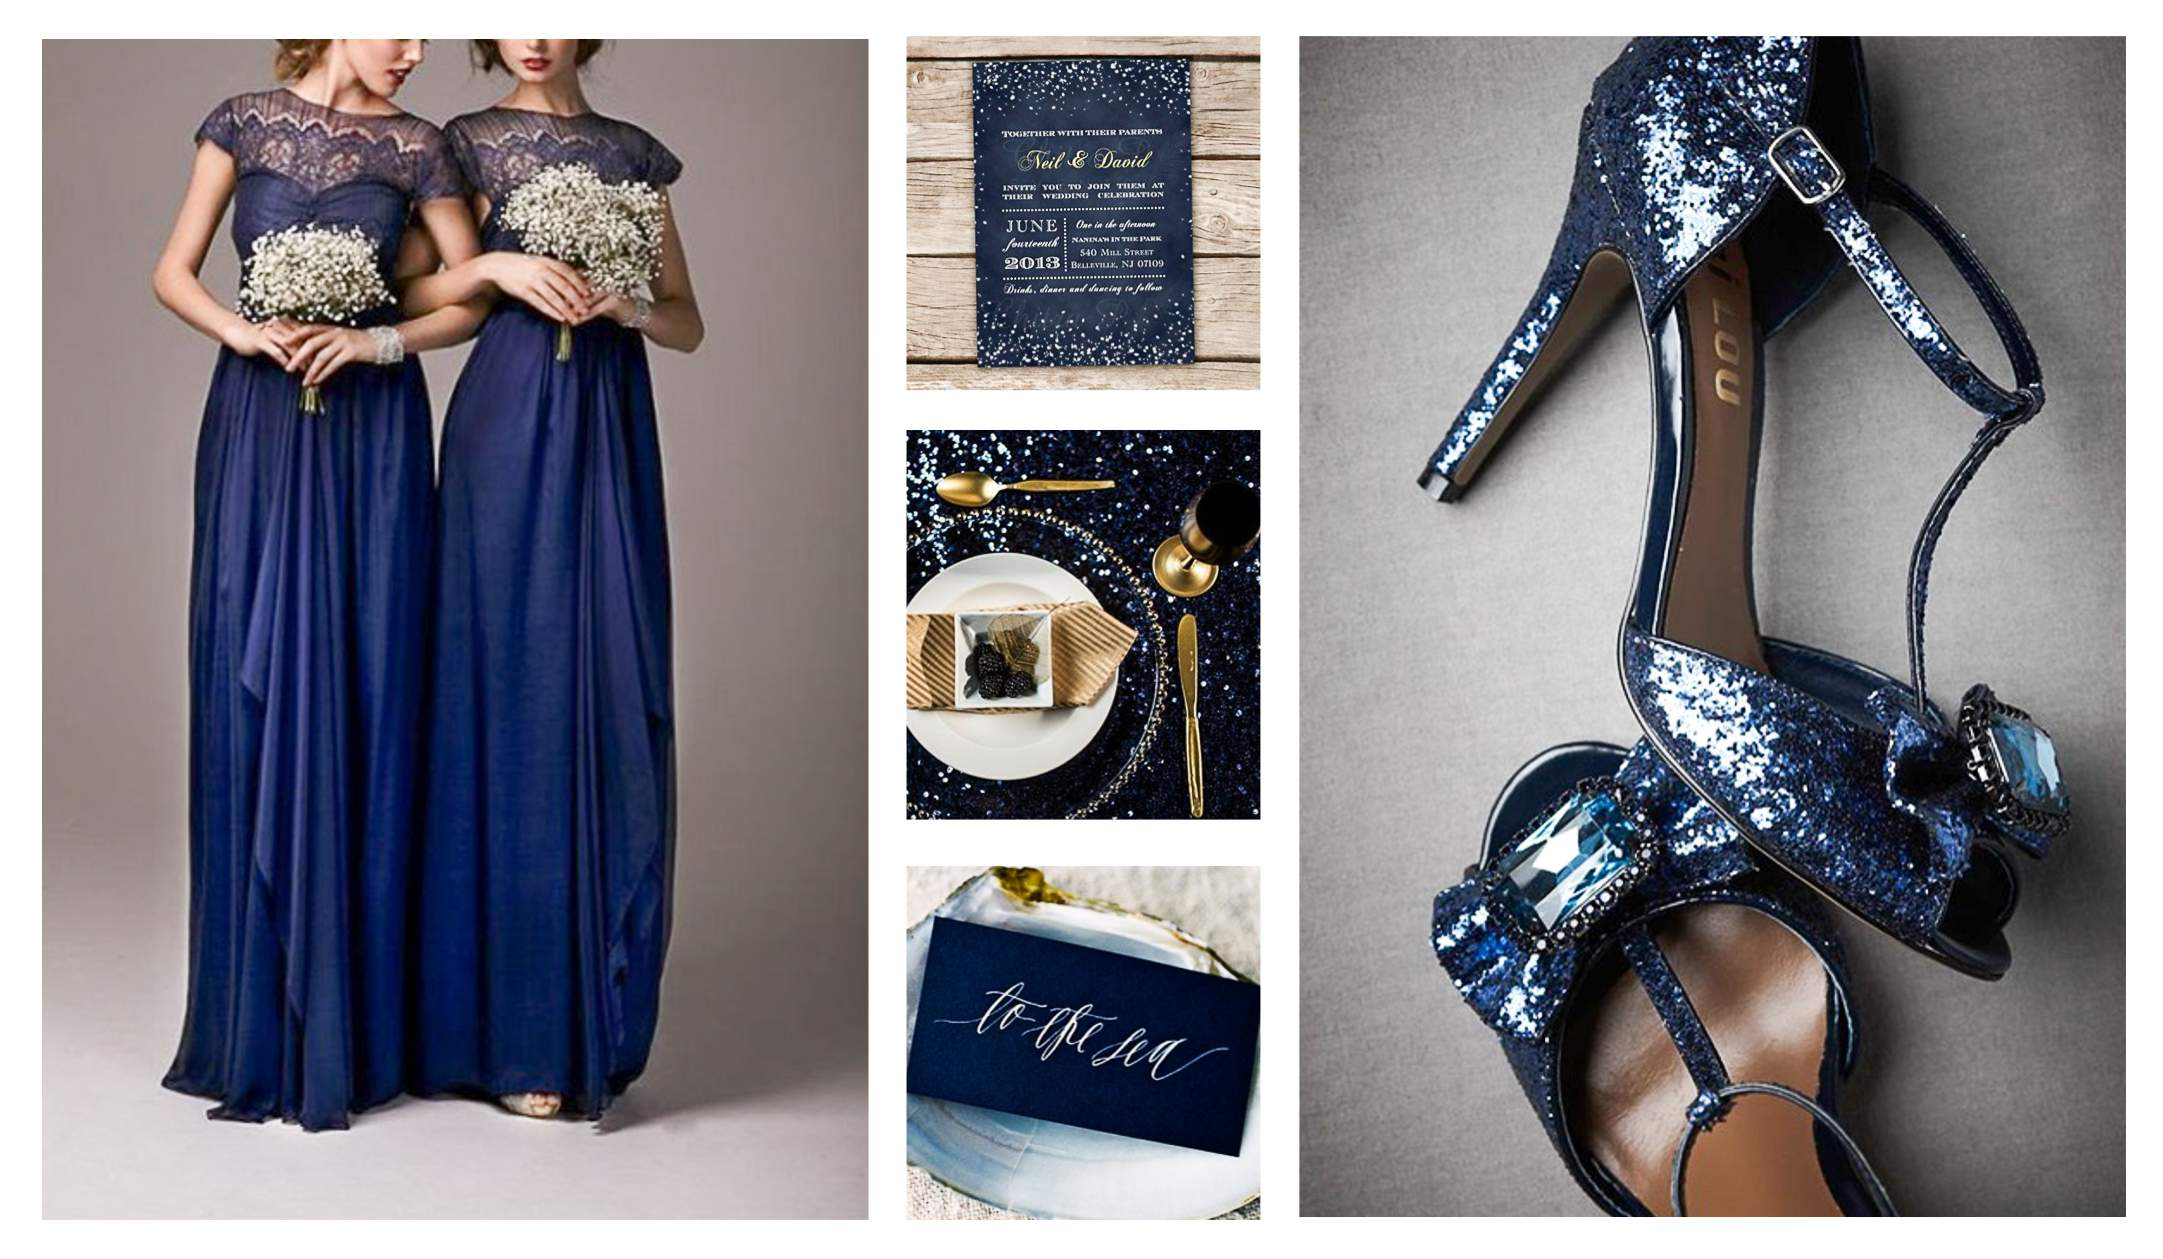 Matrimonio In Blu : Matrimonio in blu patch wedding